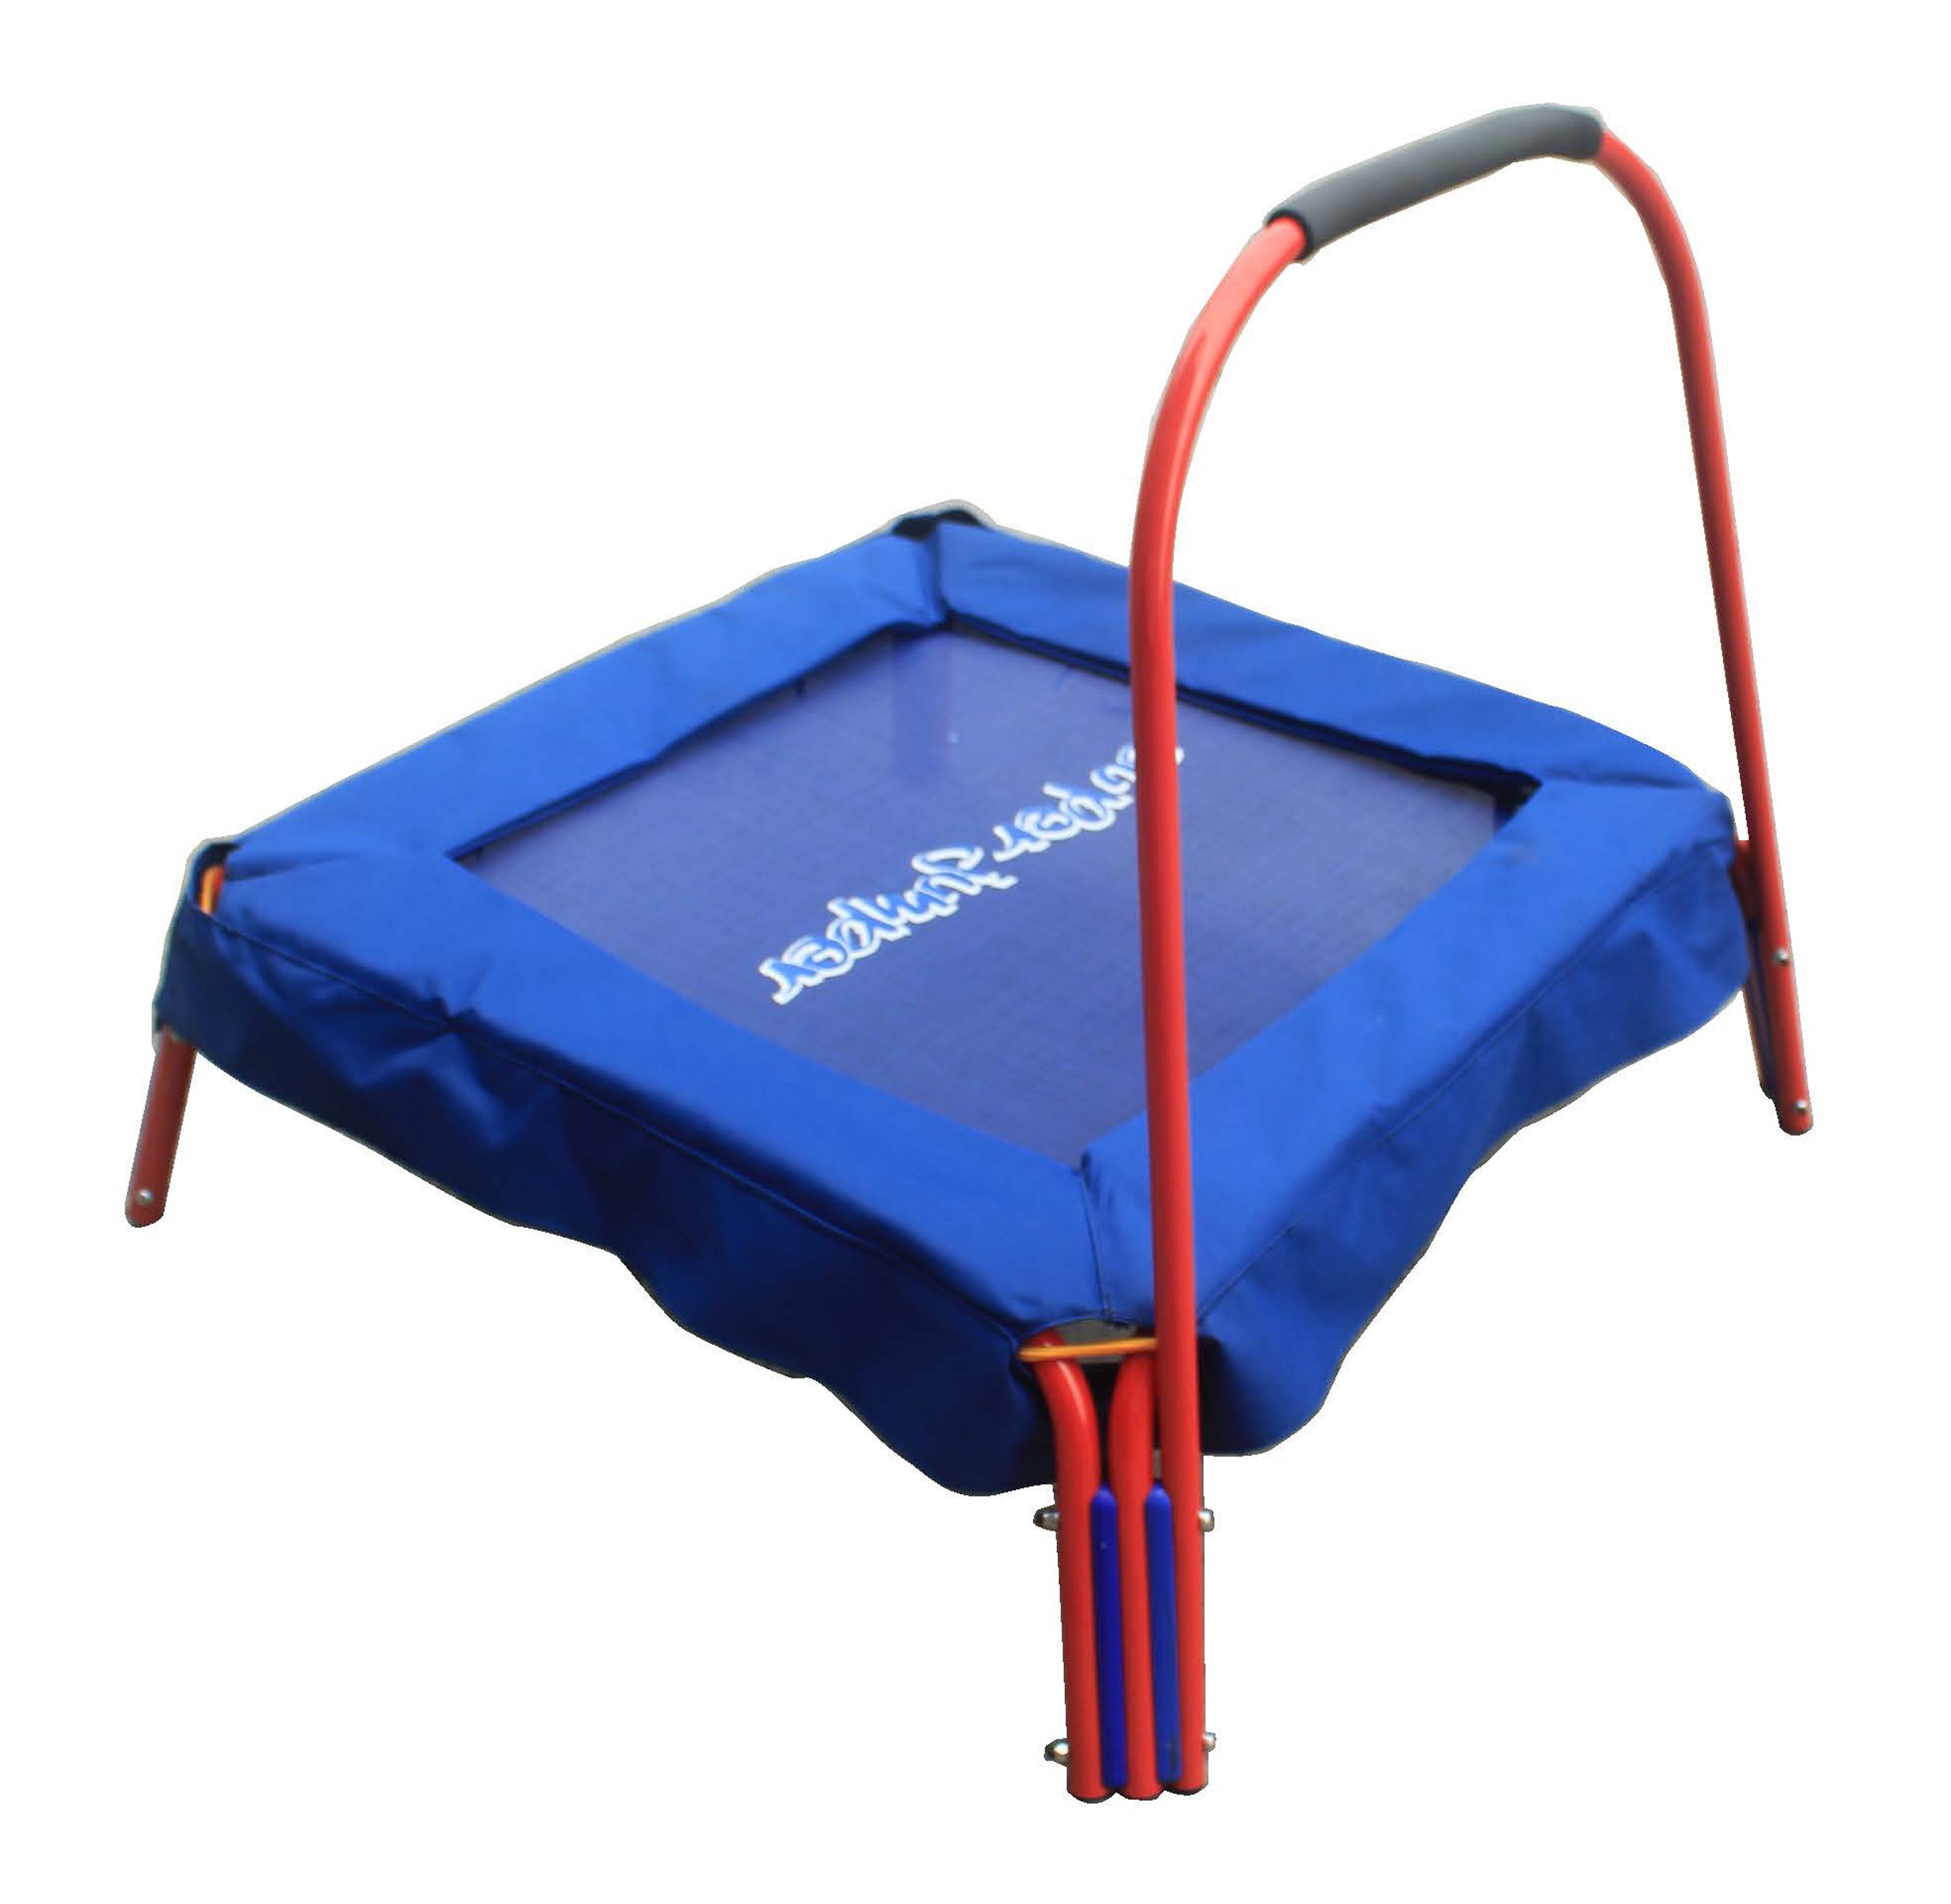 Super Jumper Junior Mini Trampoline, Blue